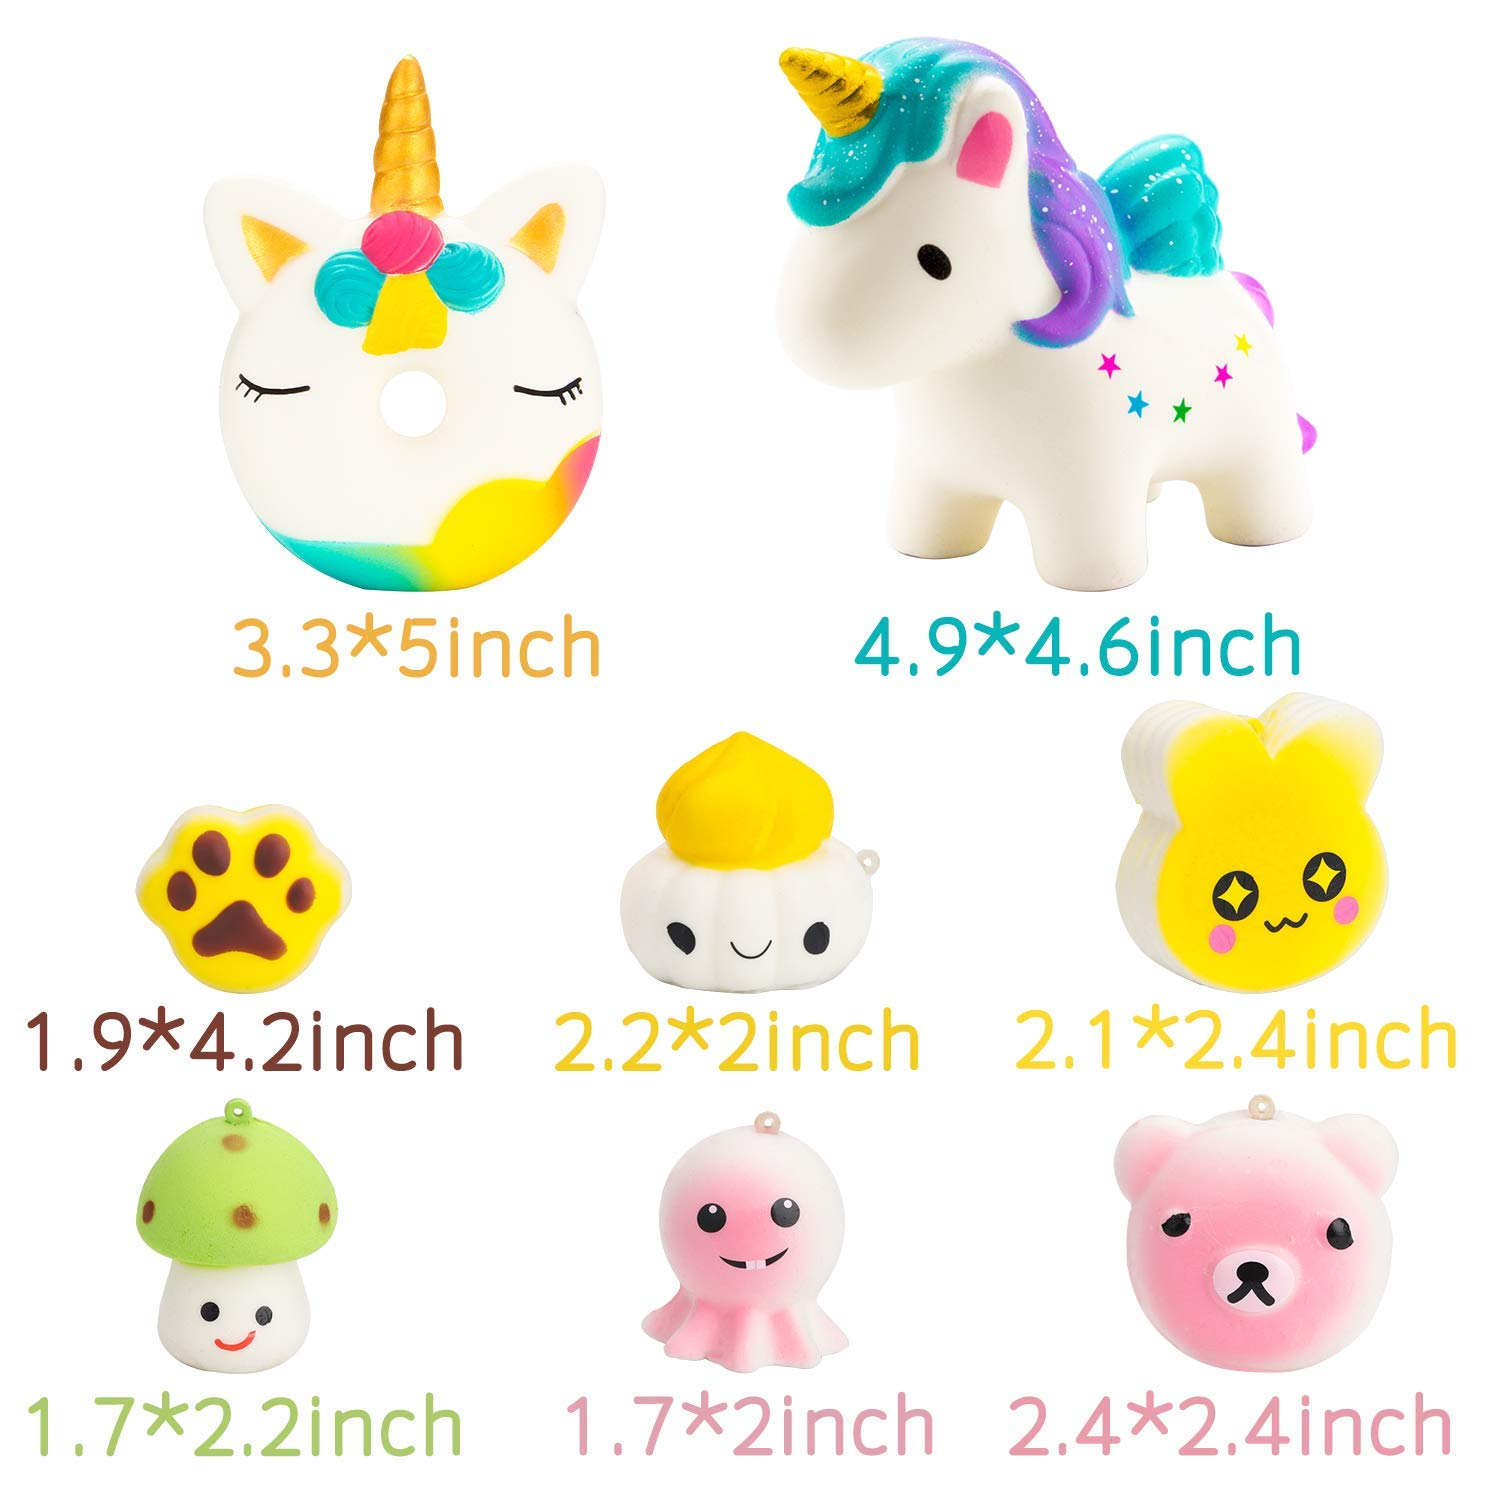 BeYumi Random 42 PCS Mini Squishy Toys 40 Kawaii Food Squishy 2 Animal Squishy Soft Cream Scented Slow Rising Squeeze Toys, Phone Straps for Kids Adults Party Favor by BeYumi (Image #5)